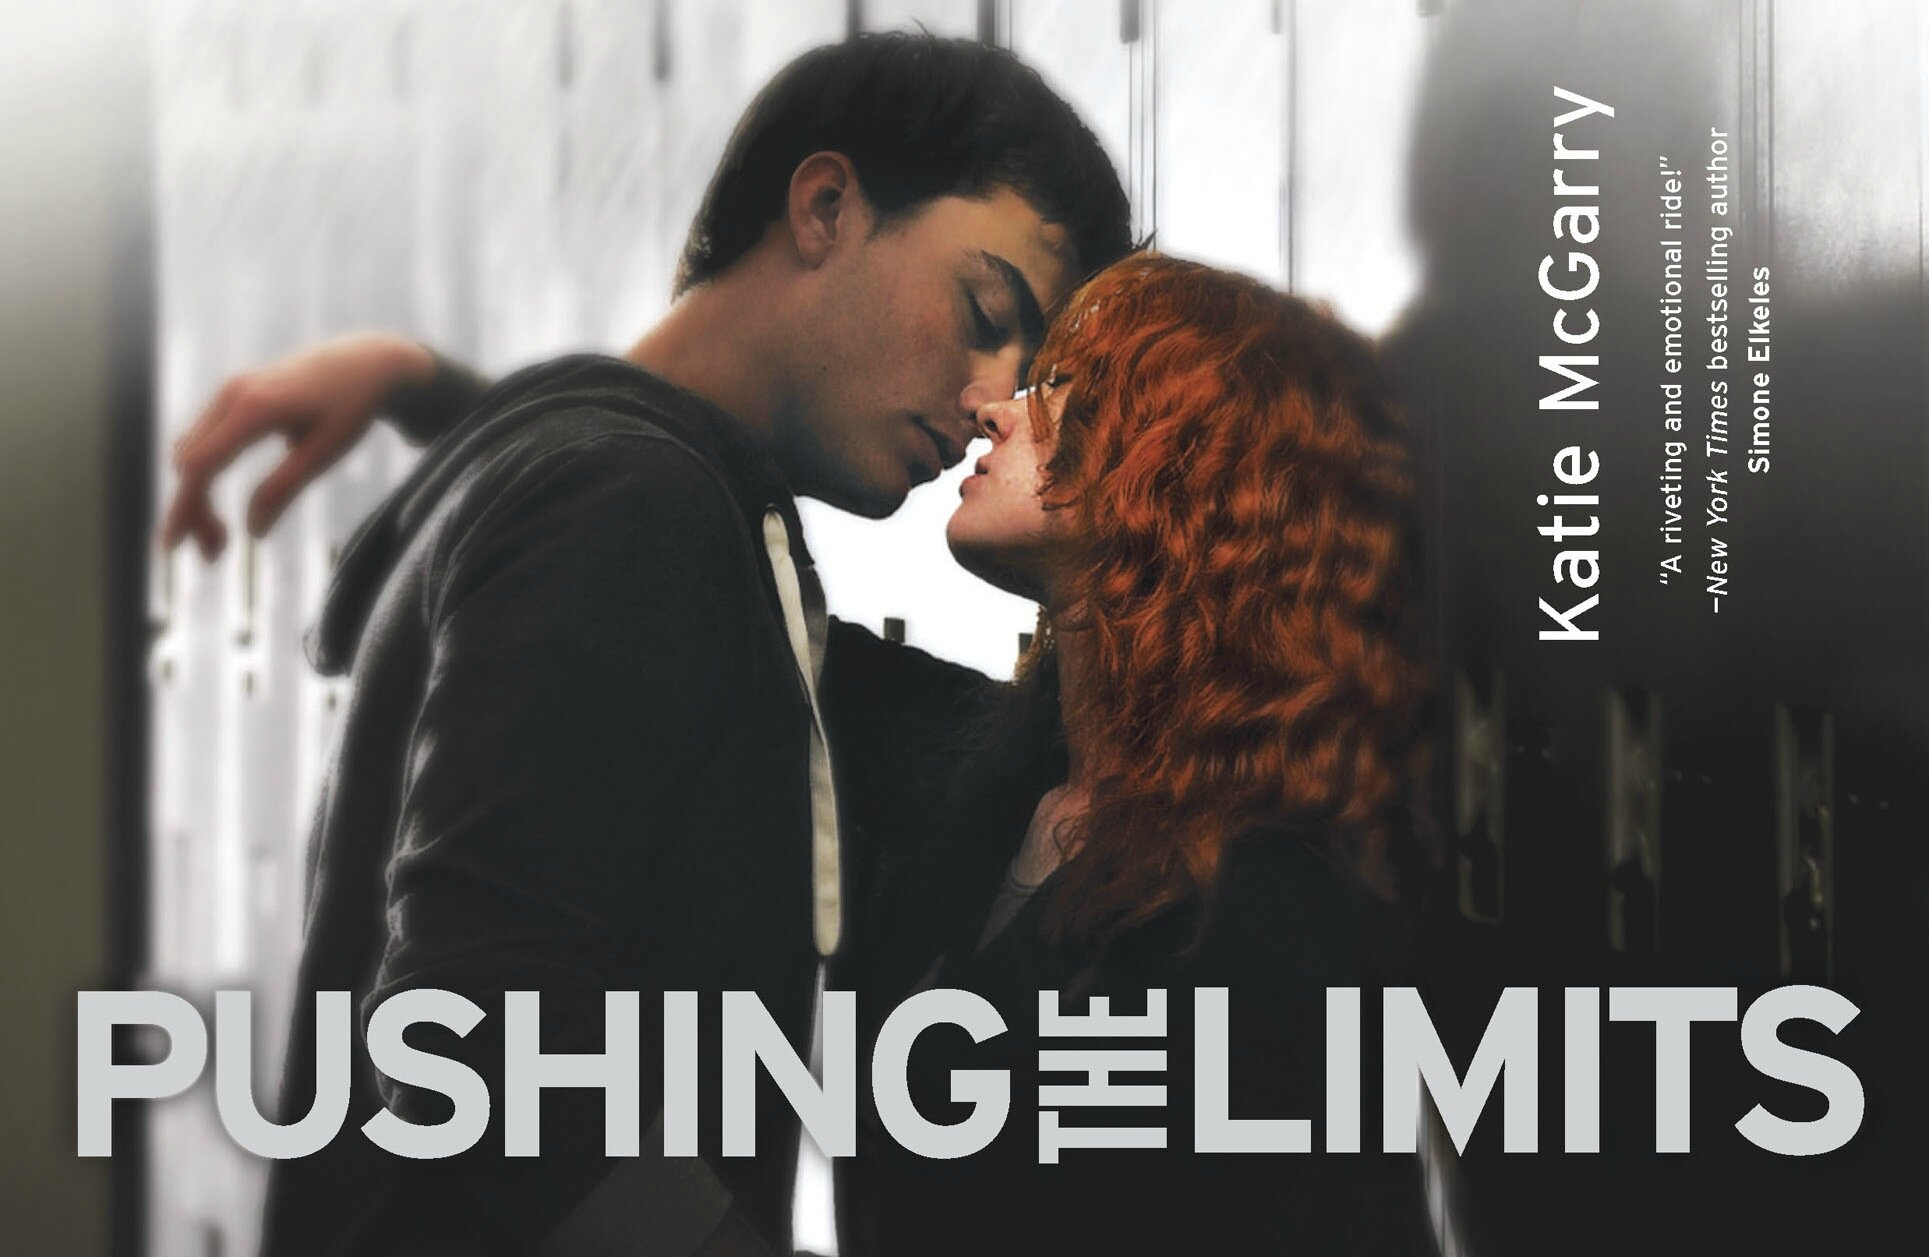 Pushing The Limits de Katie McGarry.